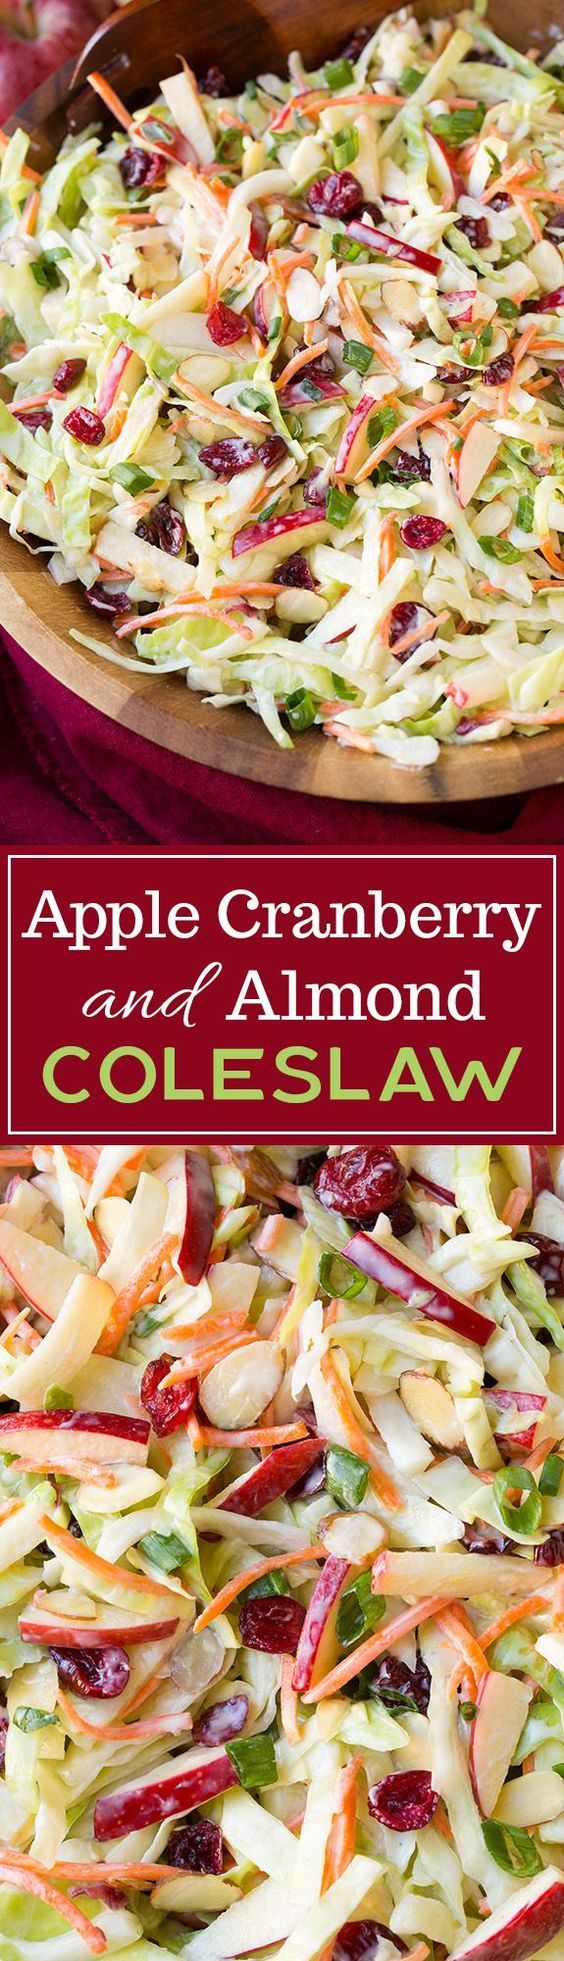 Coleslaw With Apple And Yogurt Dressing Recipe — Dishmaps